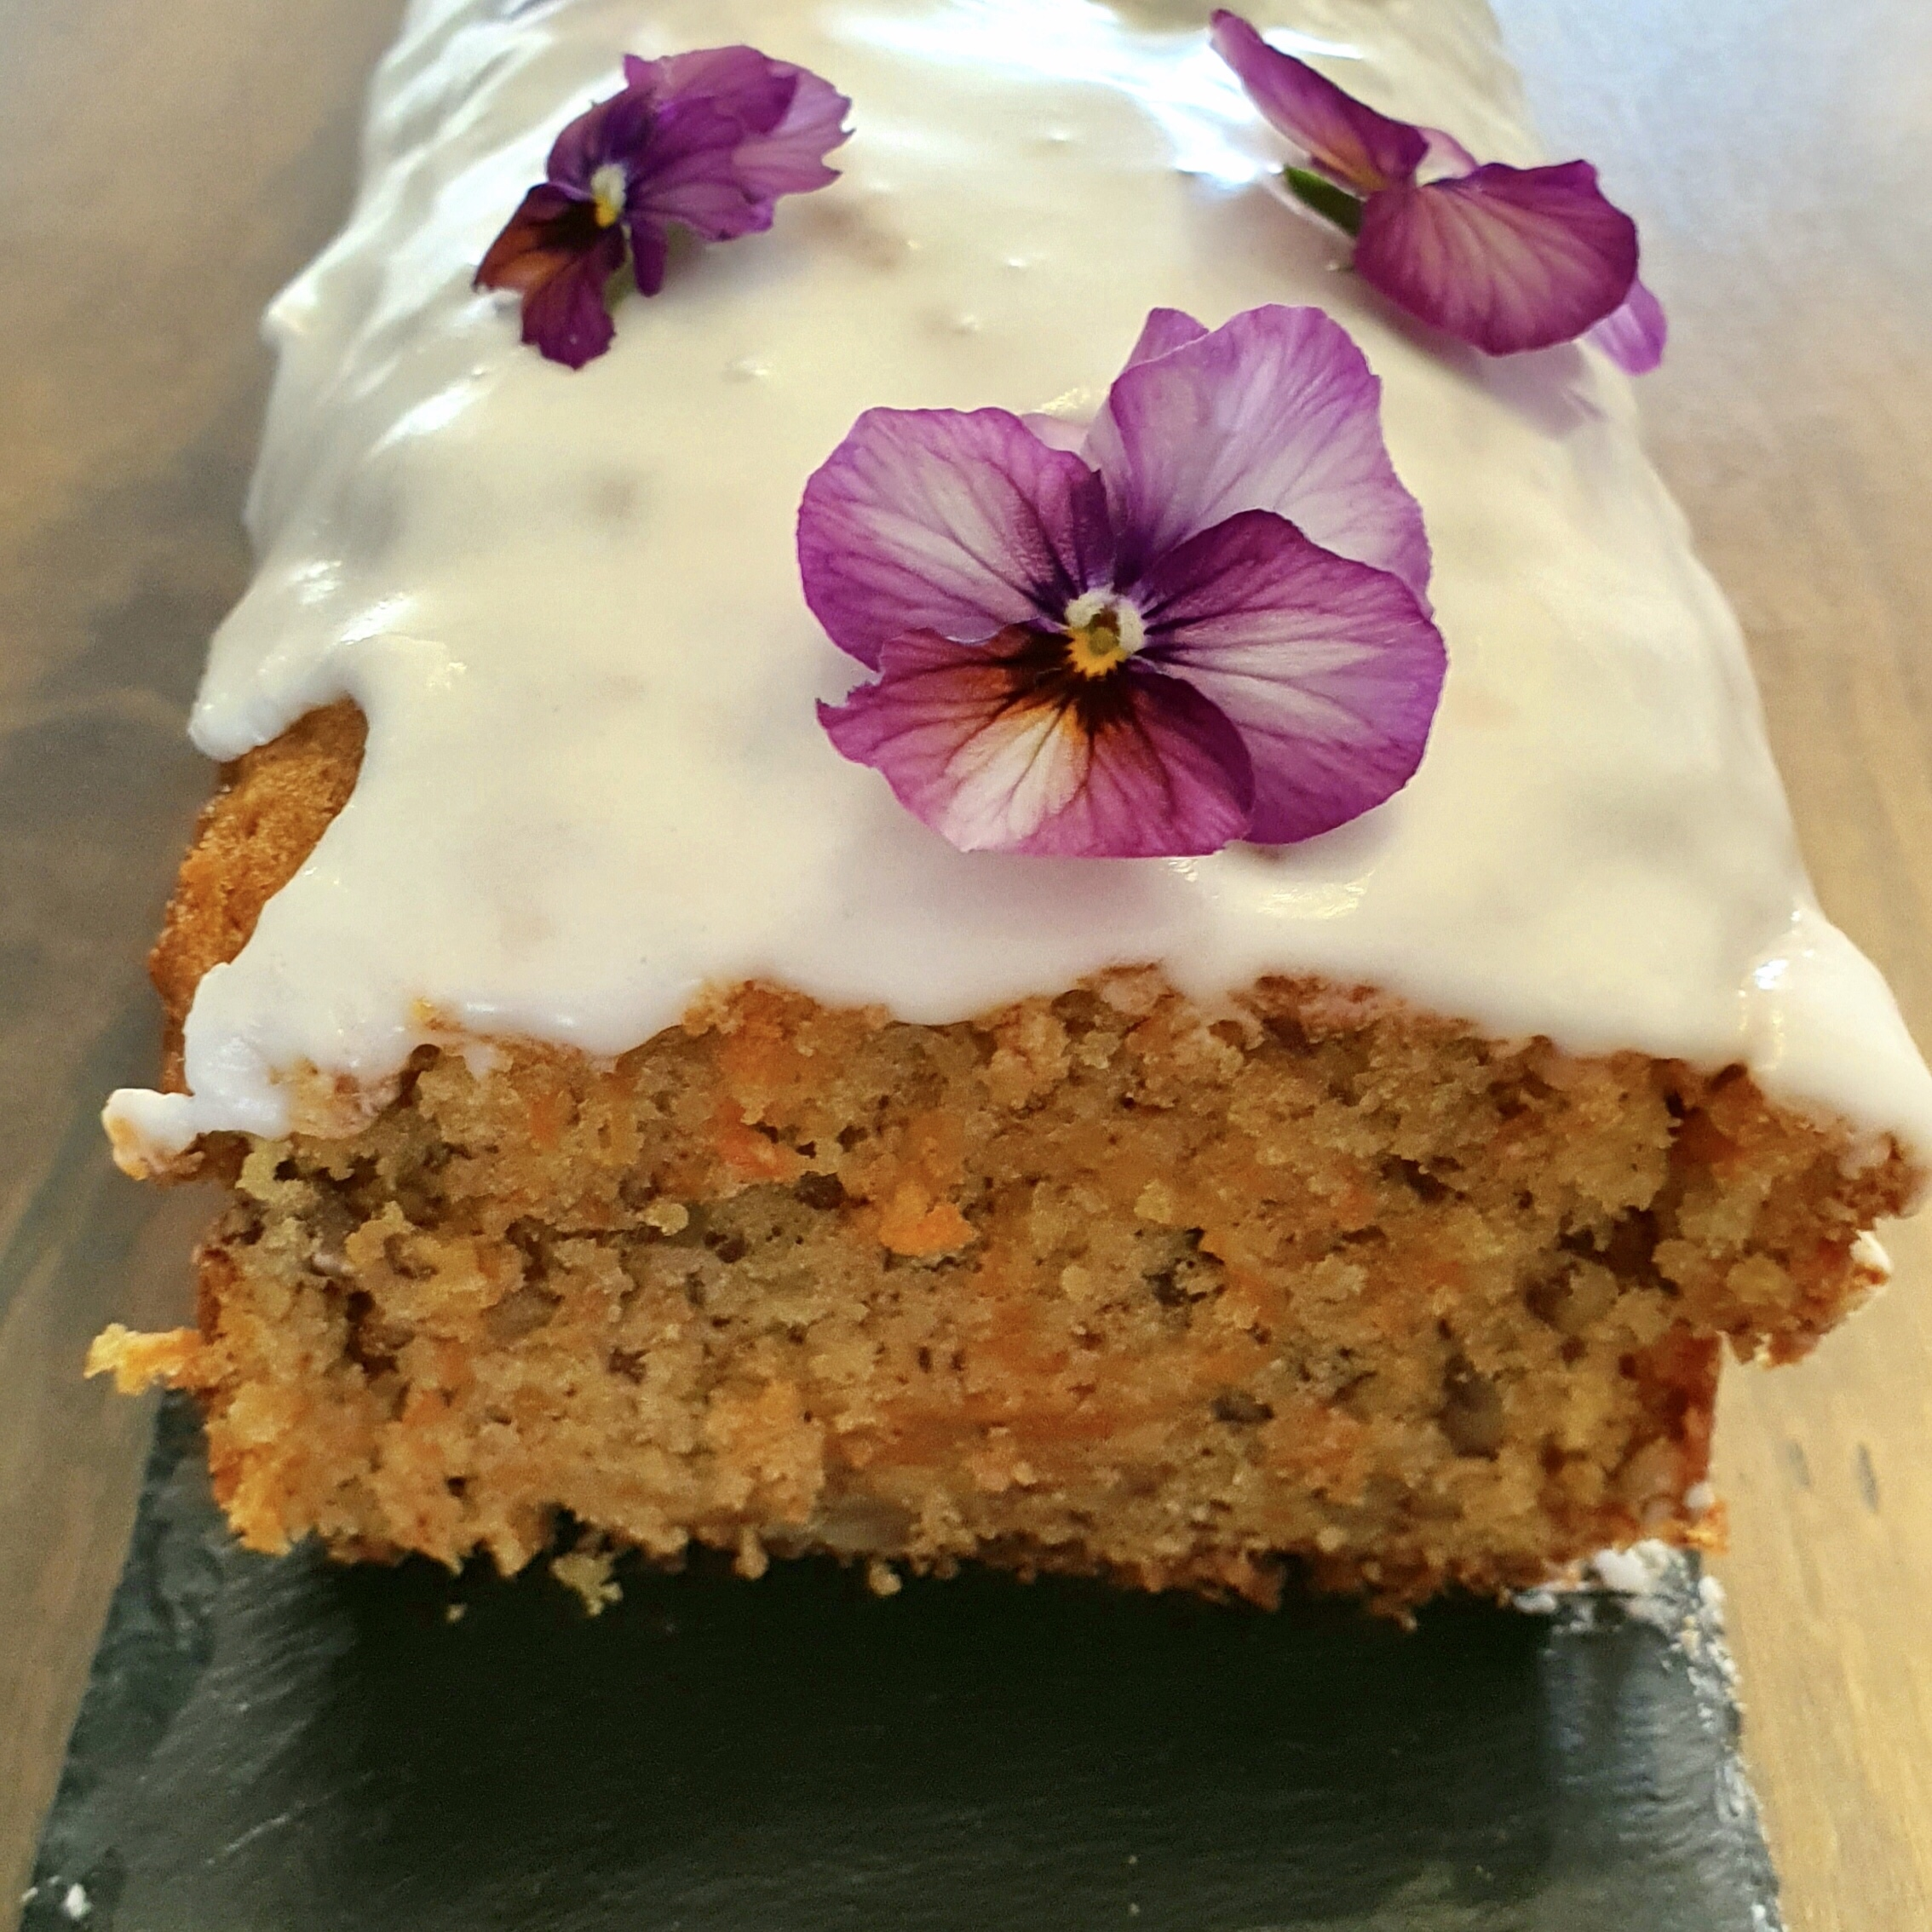 Sublime Carrot Cake Royal pour un ultime Goûter Confiné …